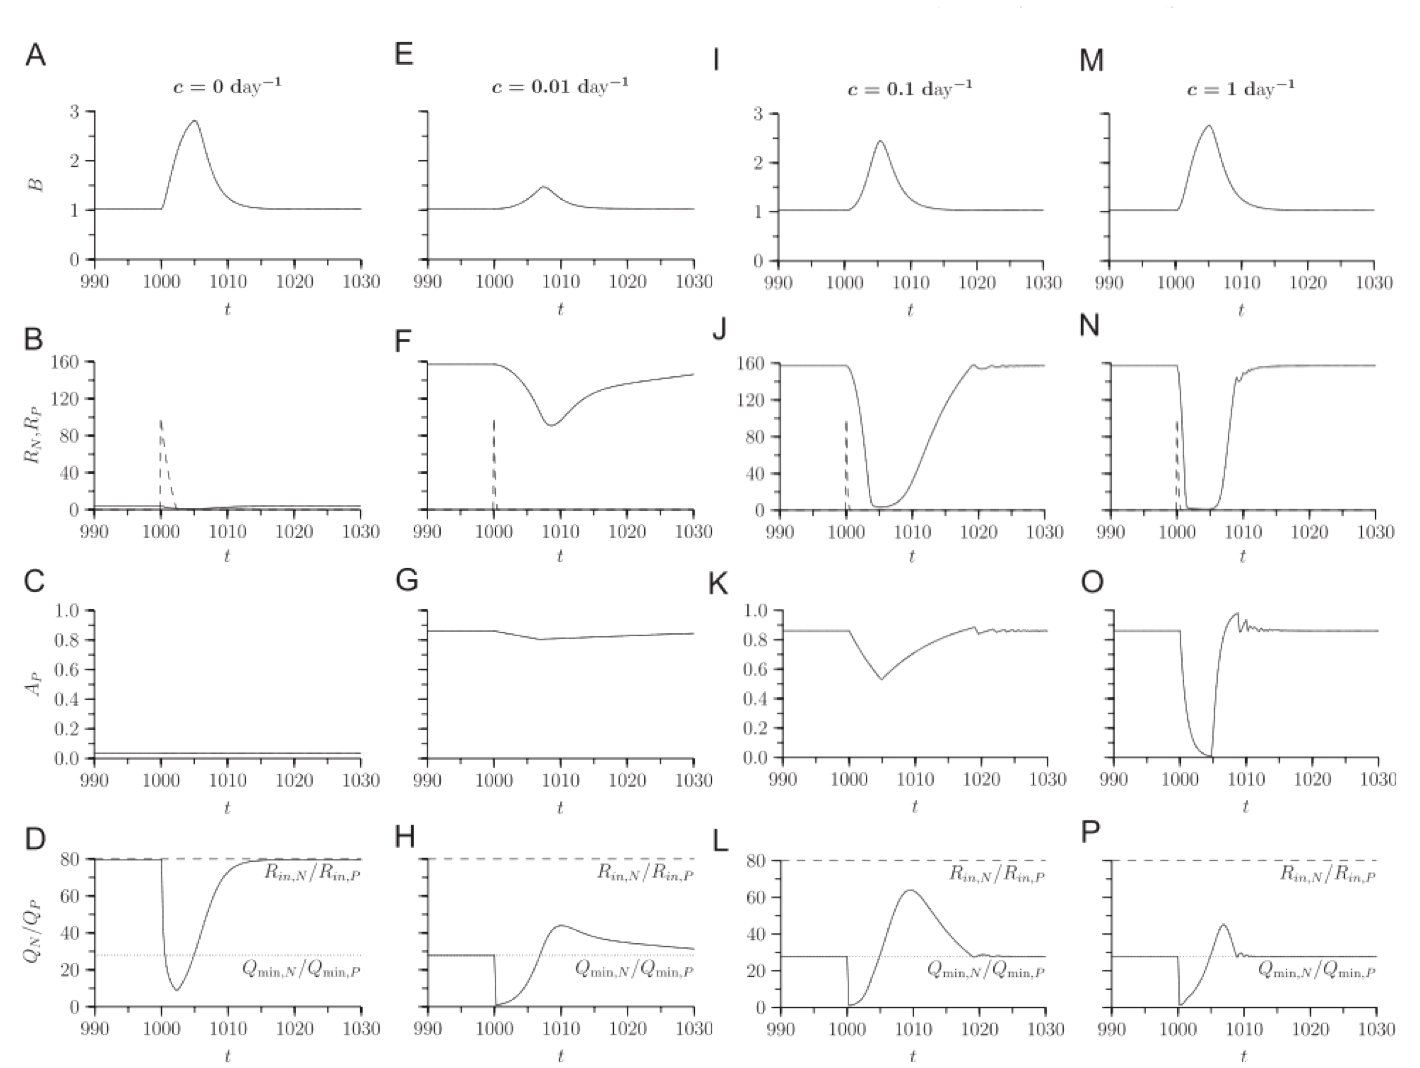 Fig. 5 from Klausmeier et al. (2007), showing response of species with different acclimation rates (c) to a pulse on one nutrient. From left to right, c increases, while variables from top to bottom are biomass (B), nutrient supply (R), allocation of uptake to P (A_P), and species biomass nutrient ratio (Q_N/Q_P)